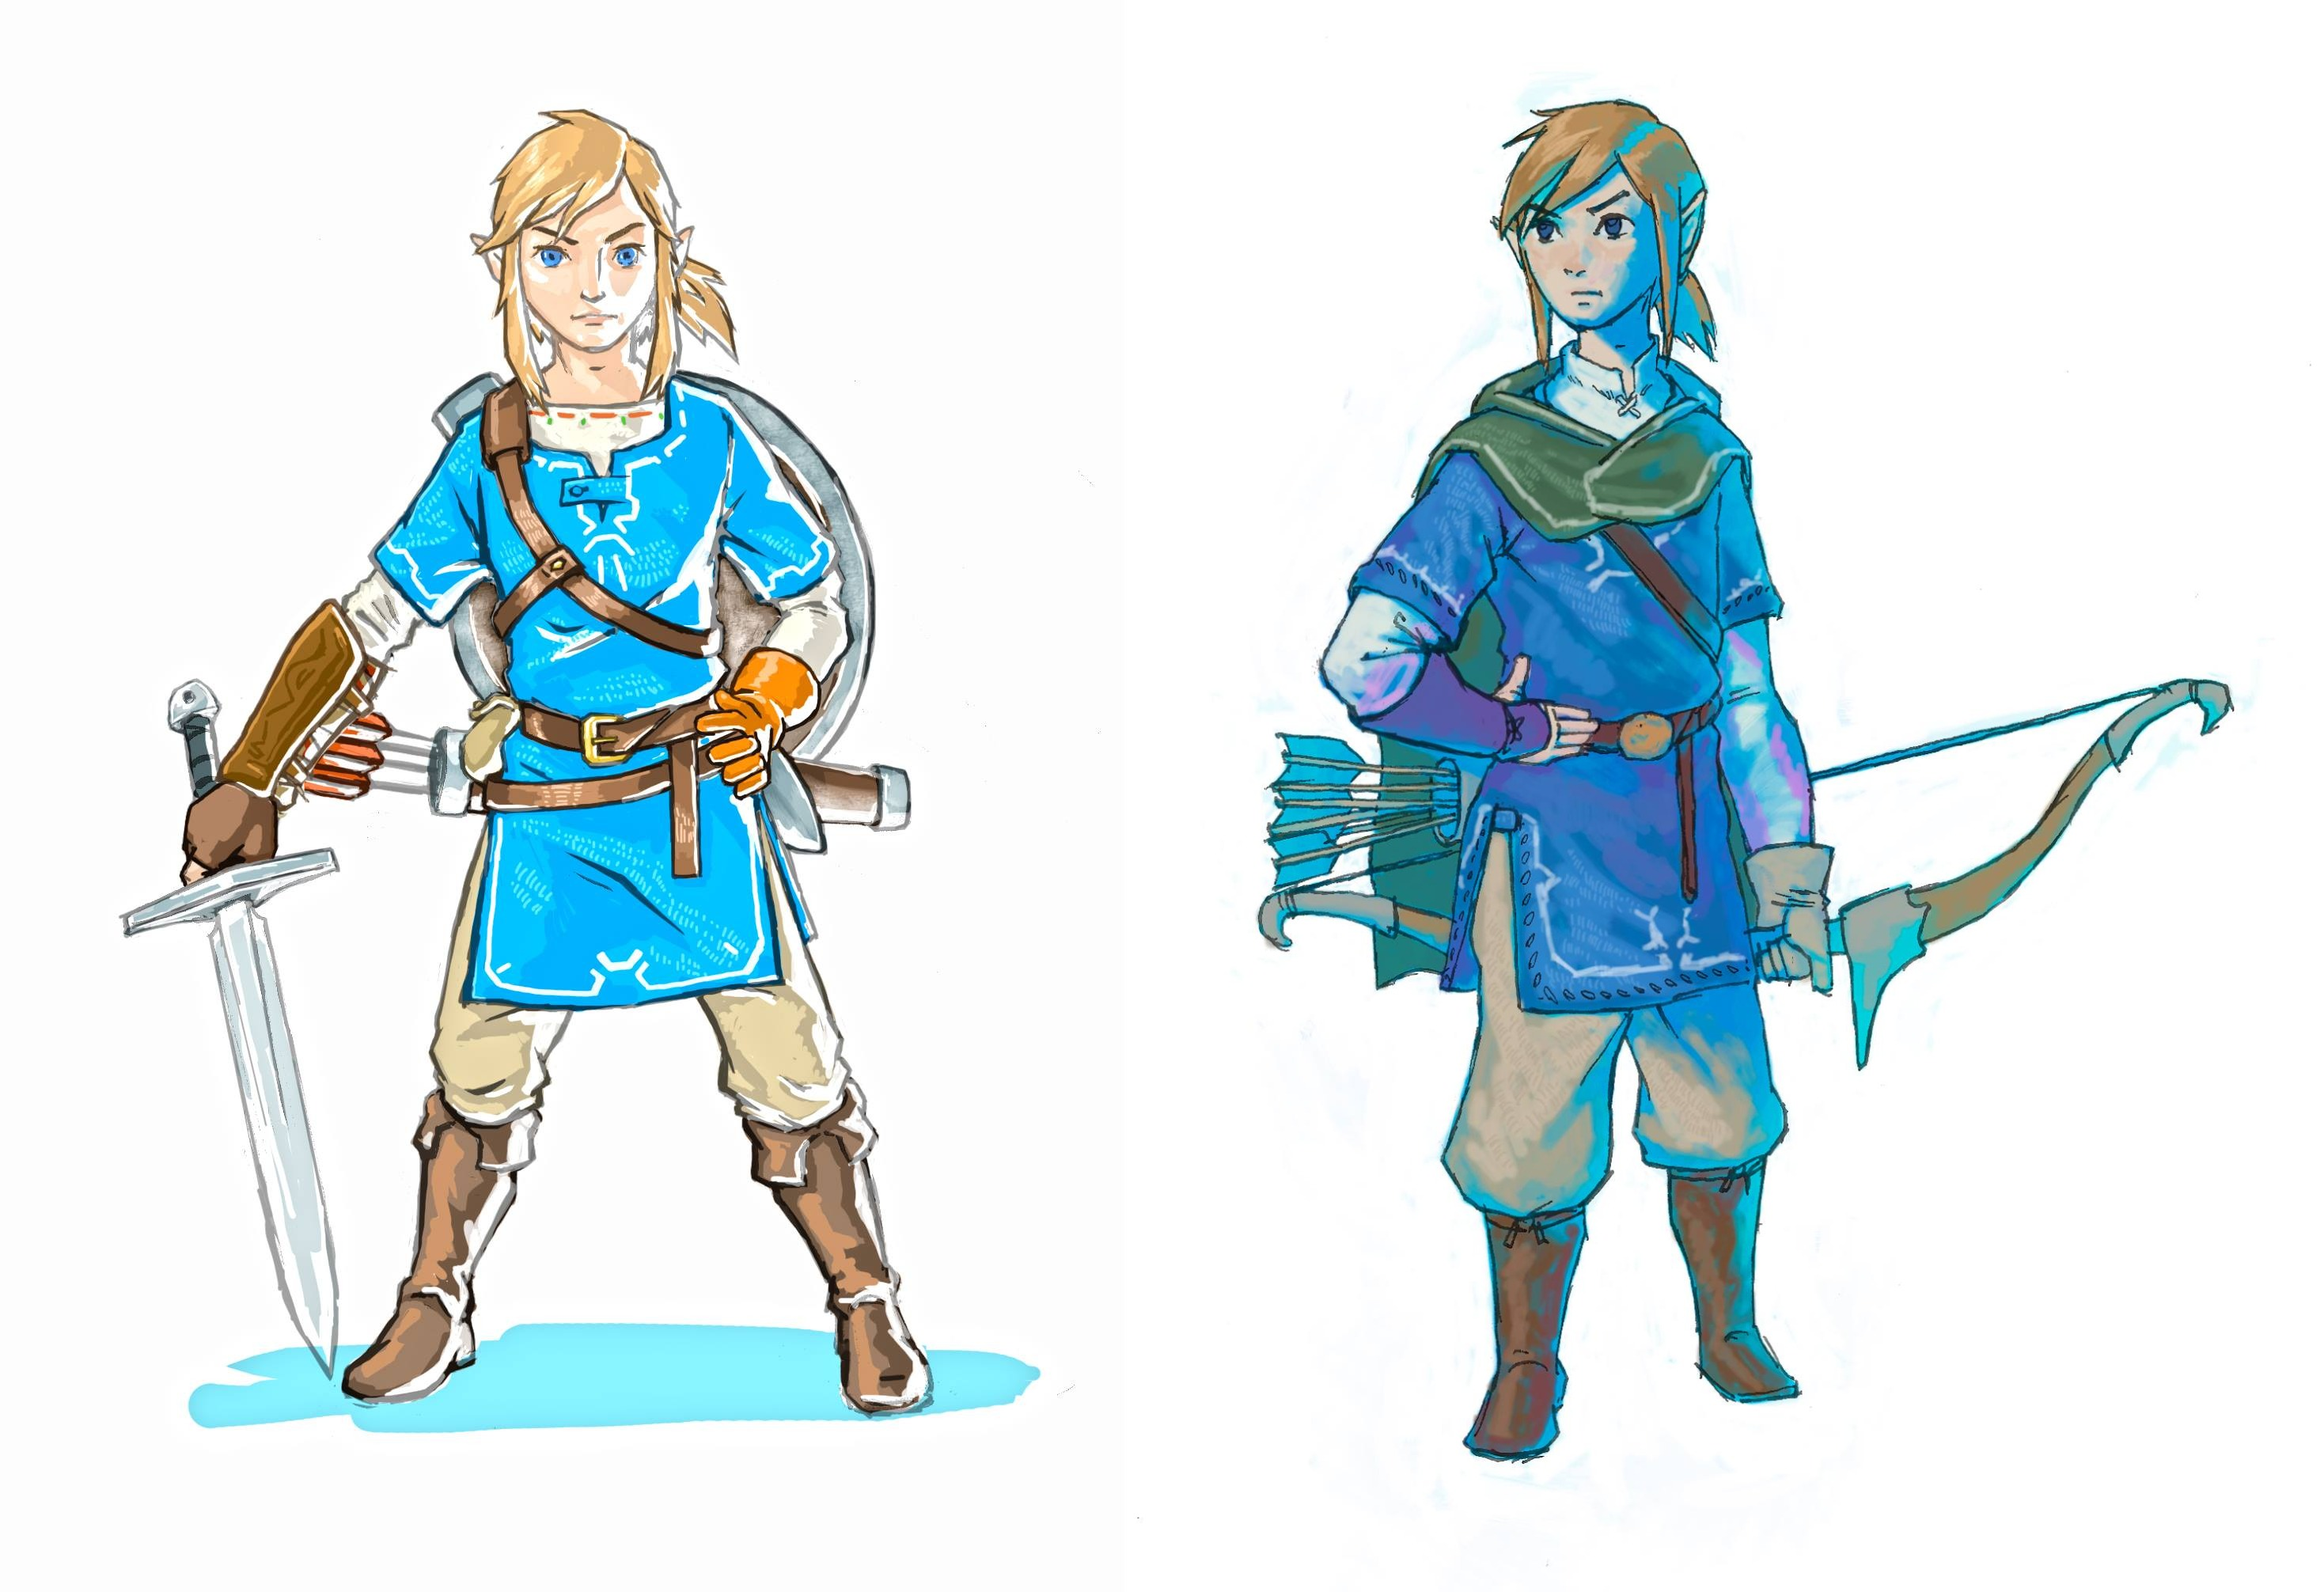 Breath of the Wild concept art